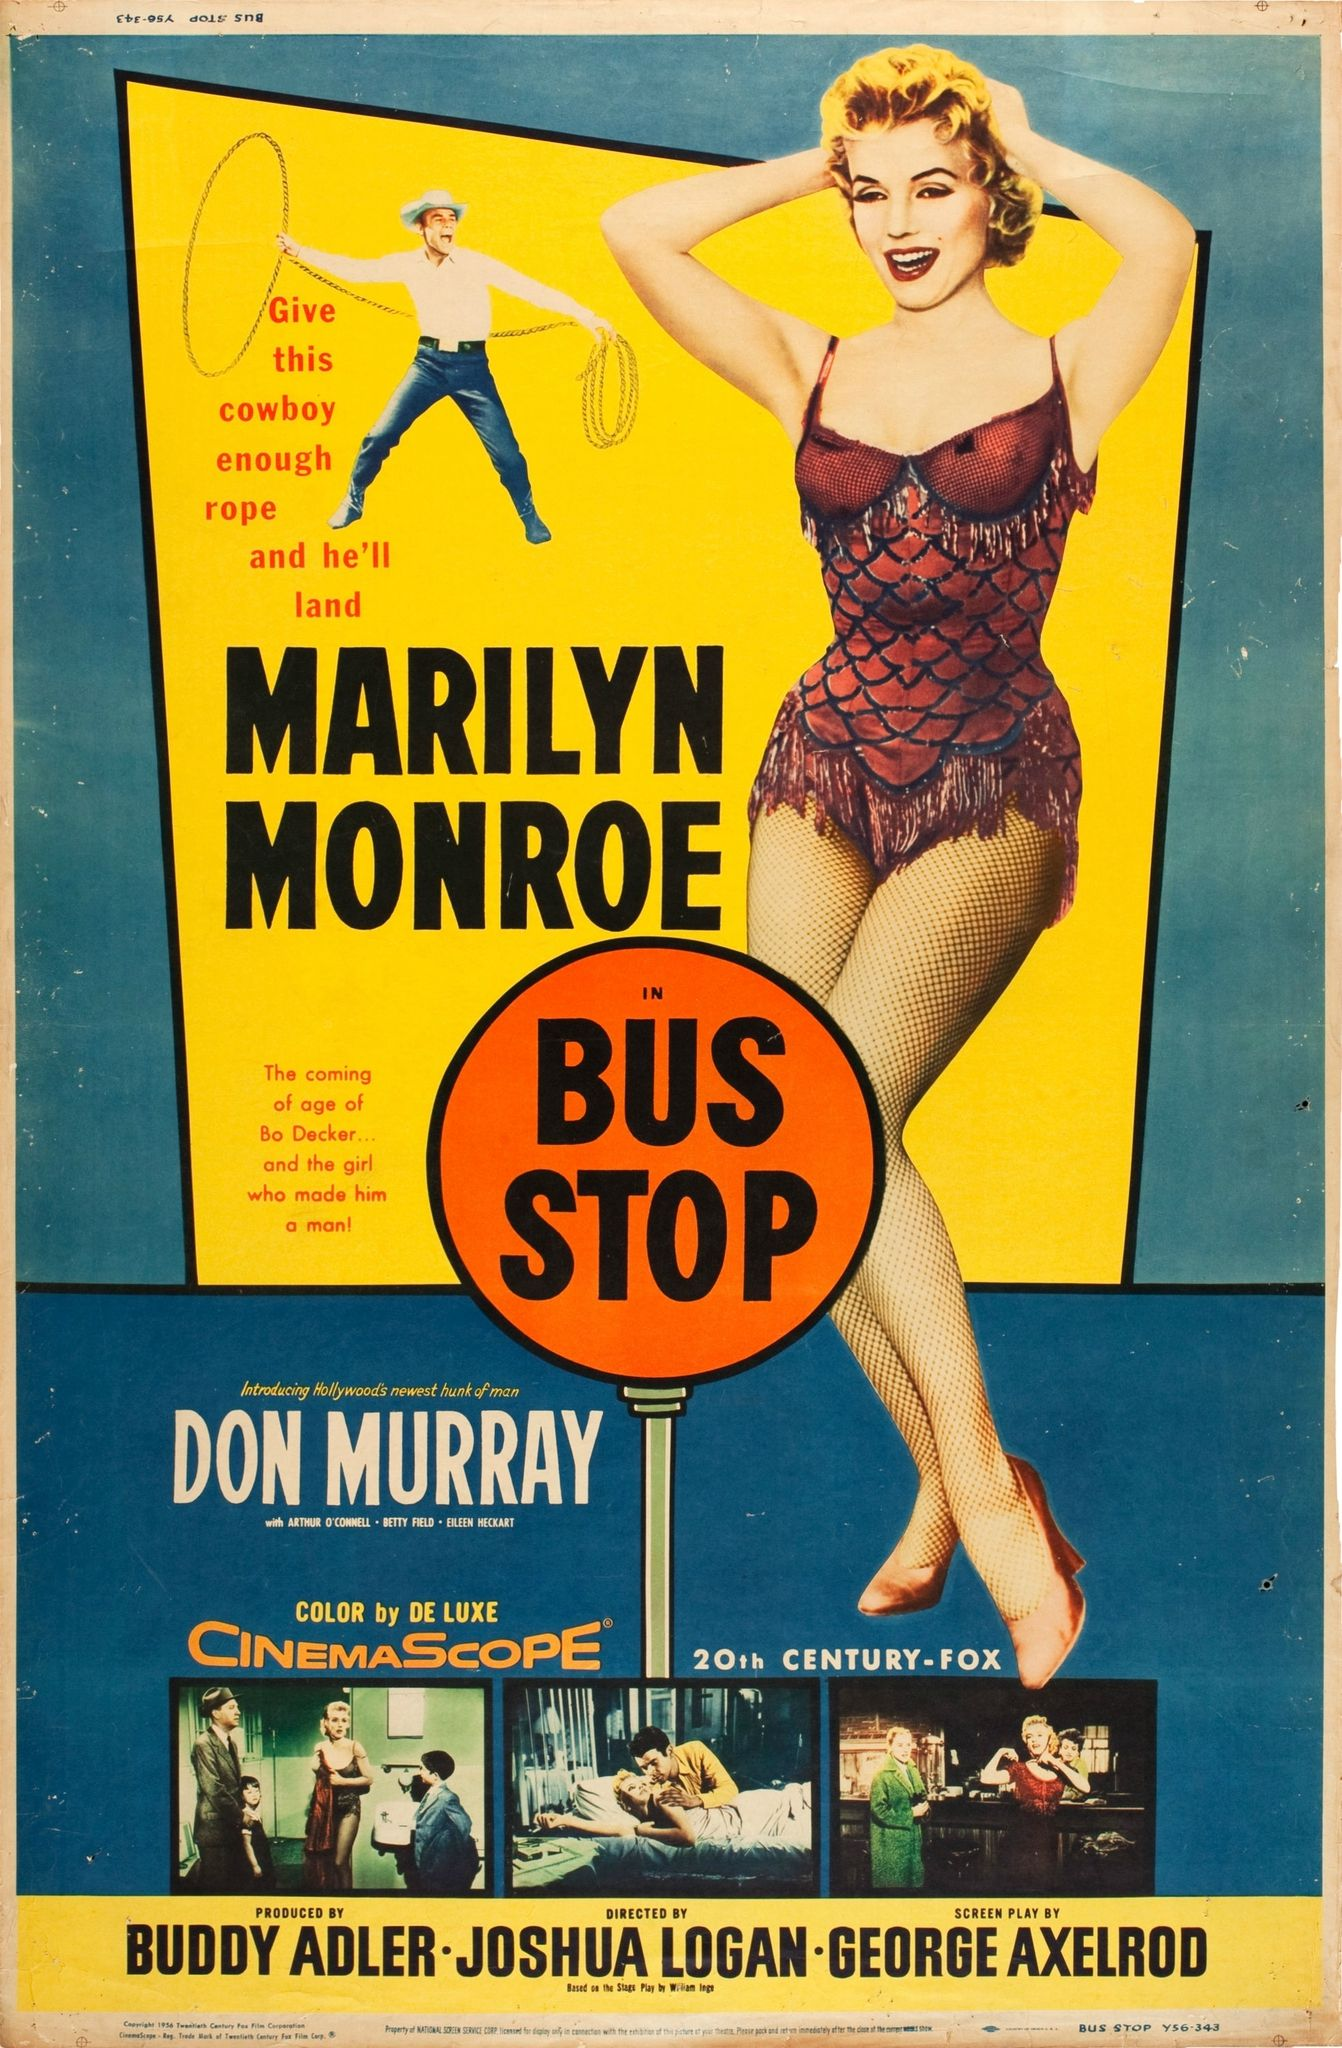 Image result for photos of marilyn monroe bus stop poster